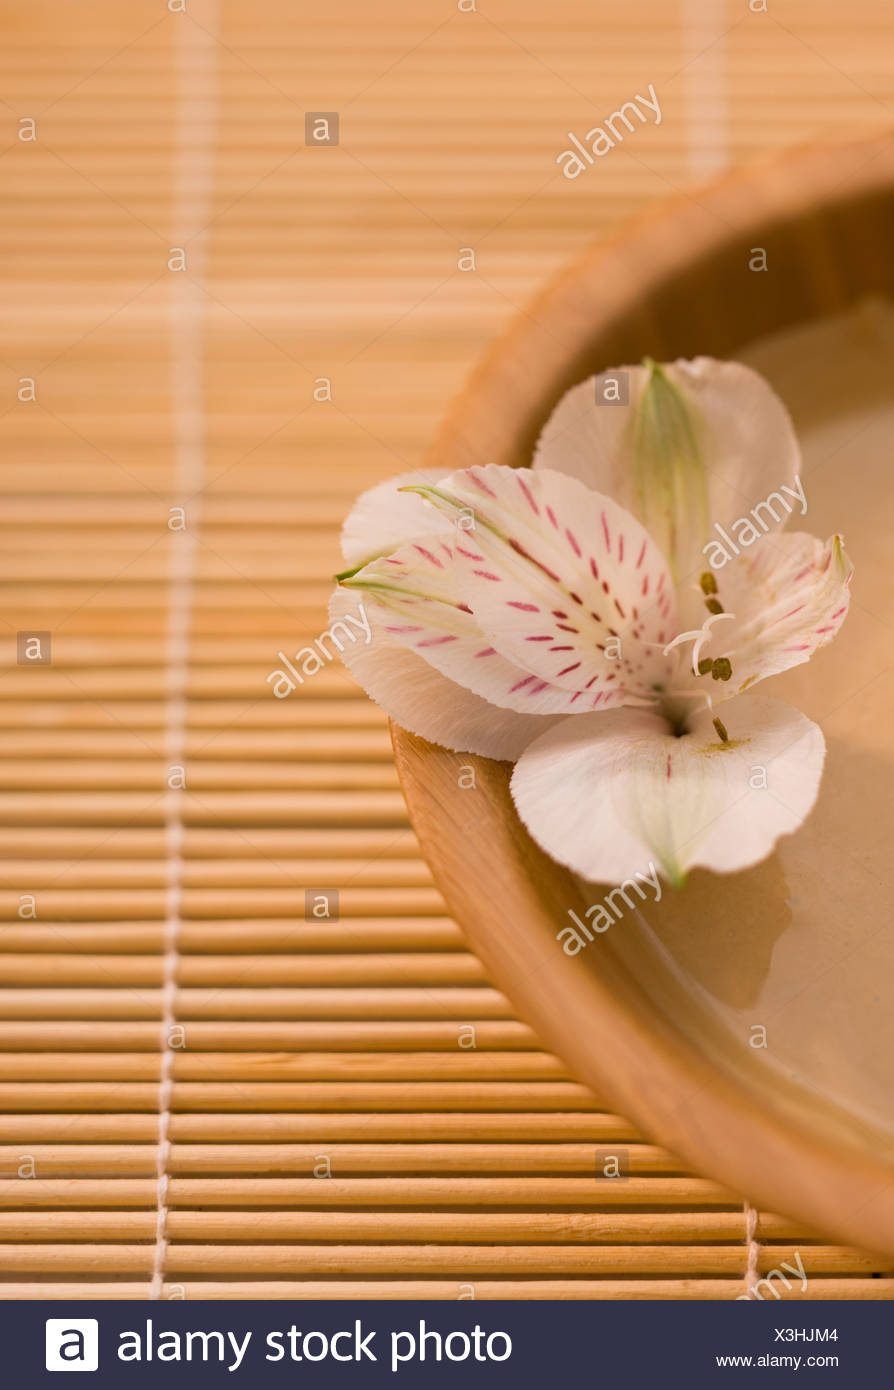 Peruvian lily (Alstromeria) in bowl of mud mask on bamboo mat Stock Photo